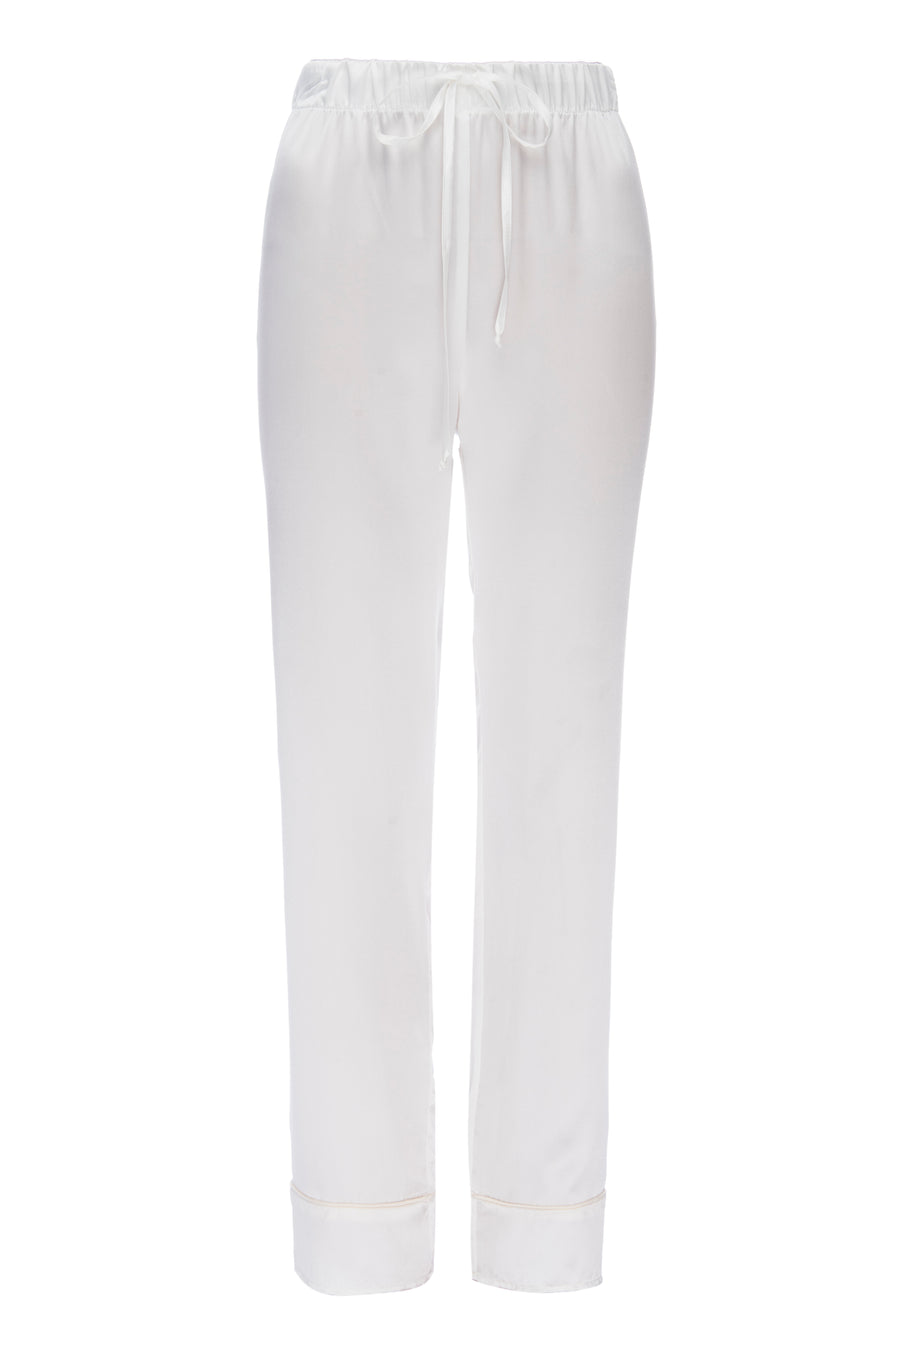 Silk Charmeuse Pants: Ivory